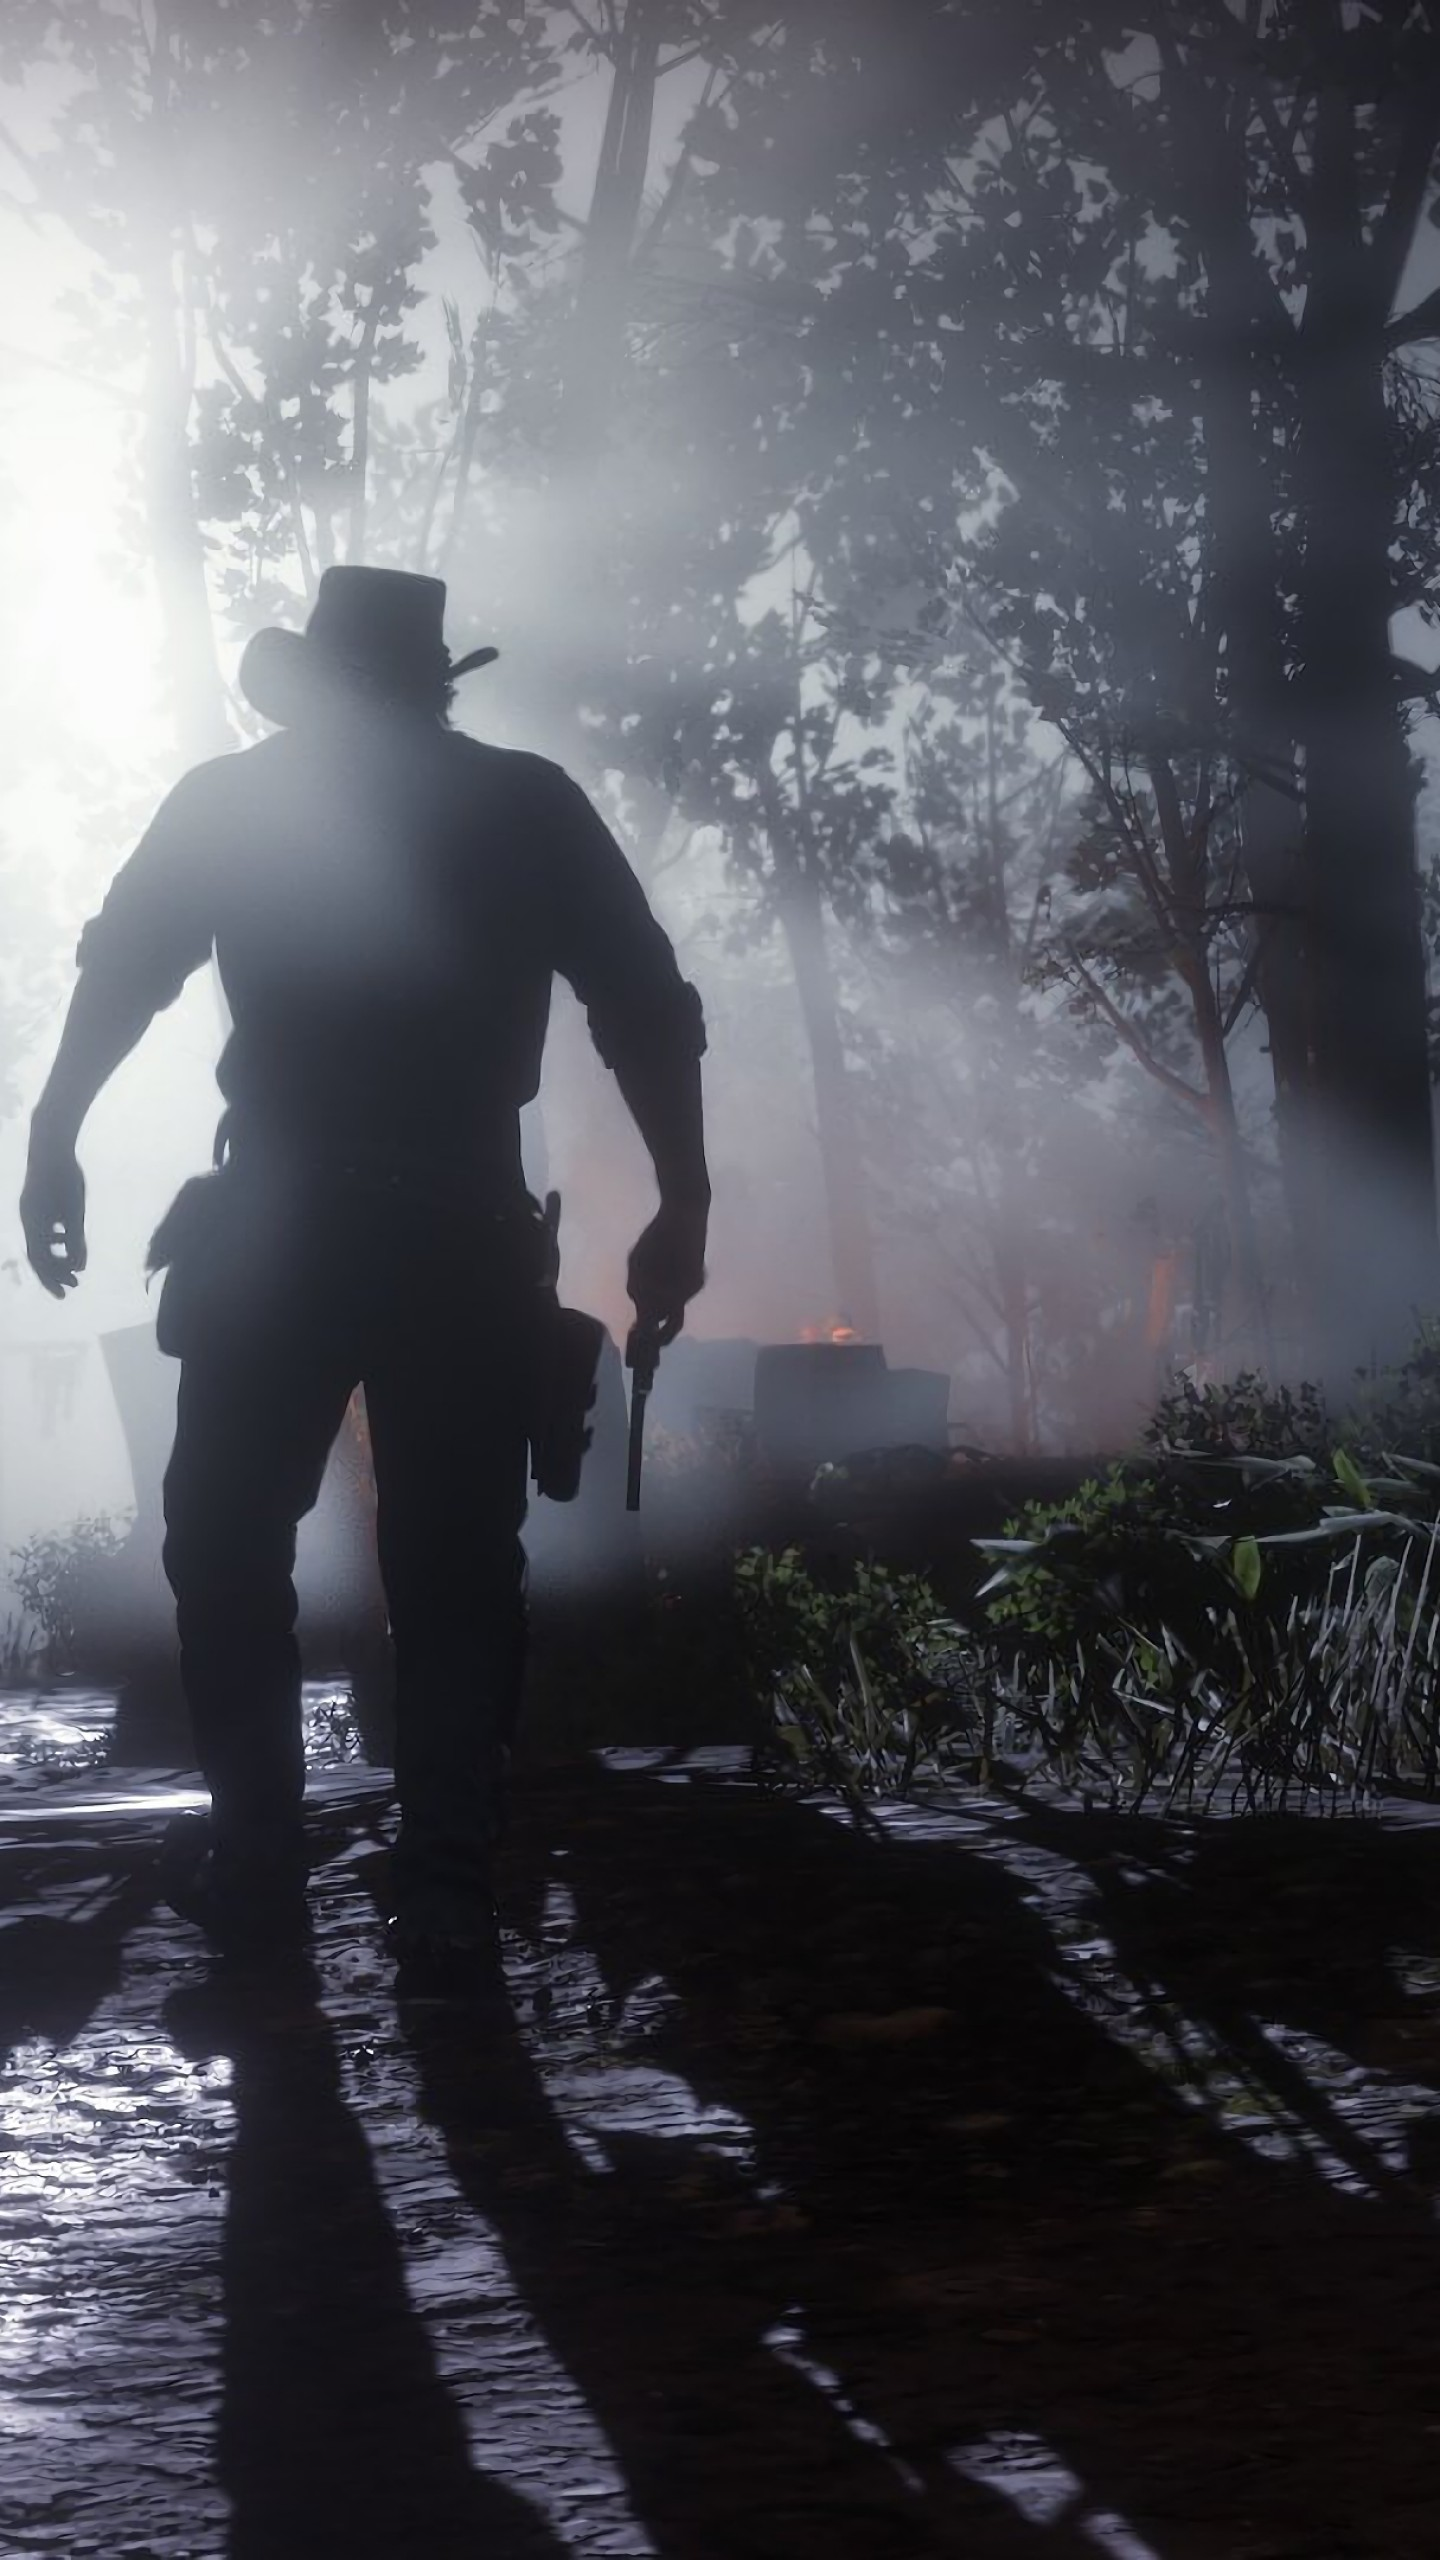 Wallpaper Red Dead Redemption 2 Screenshot 4k Games 18212